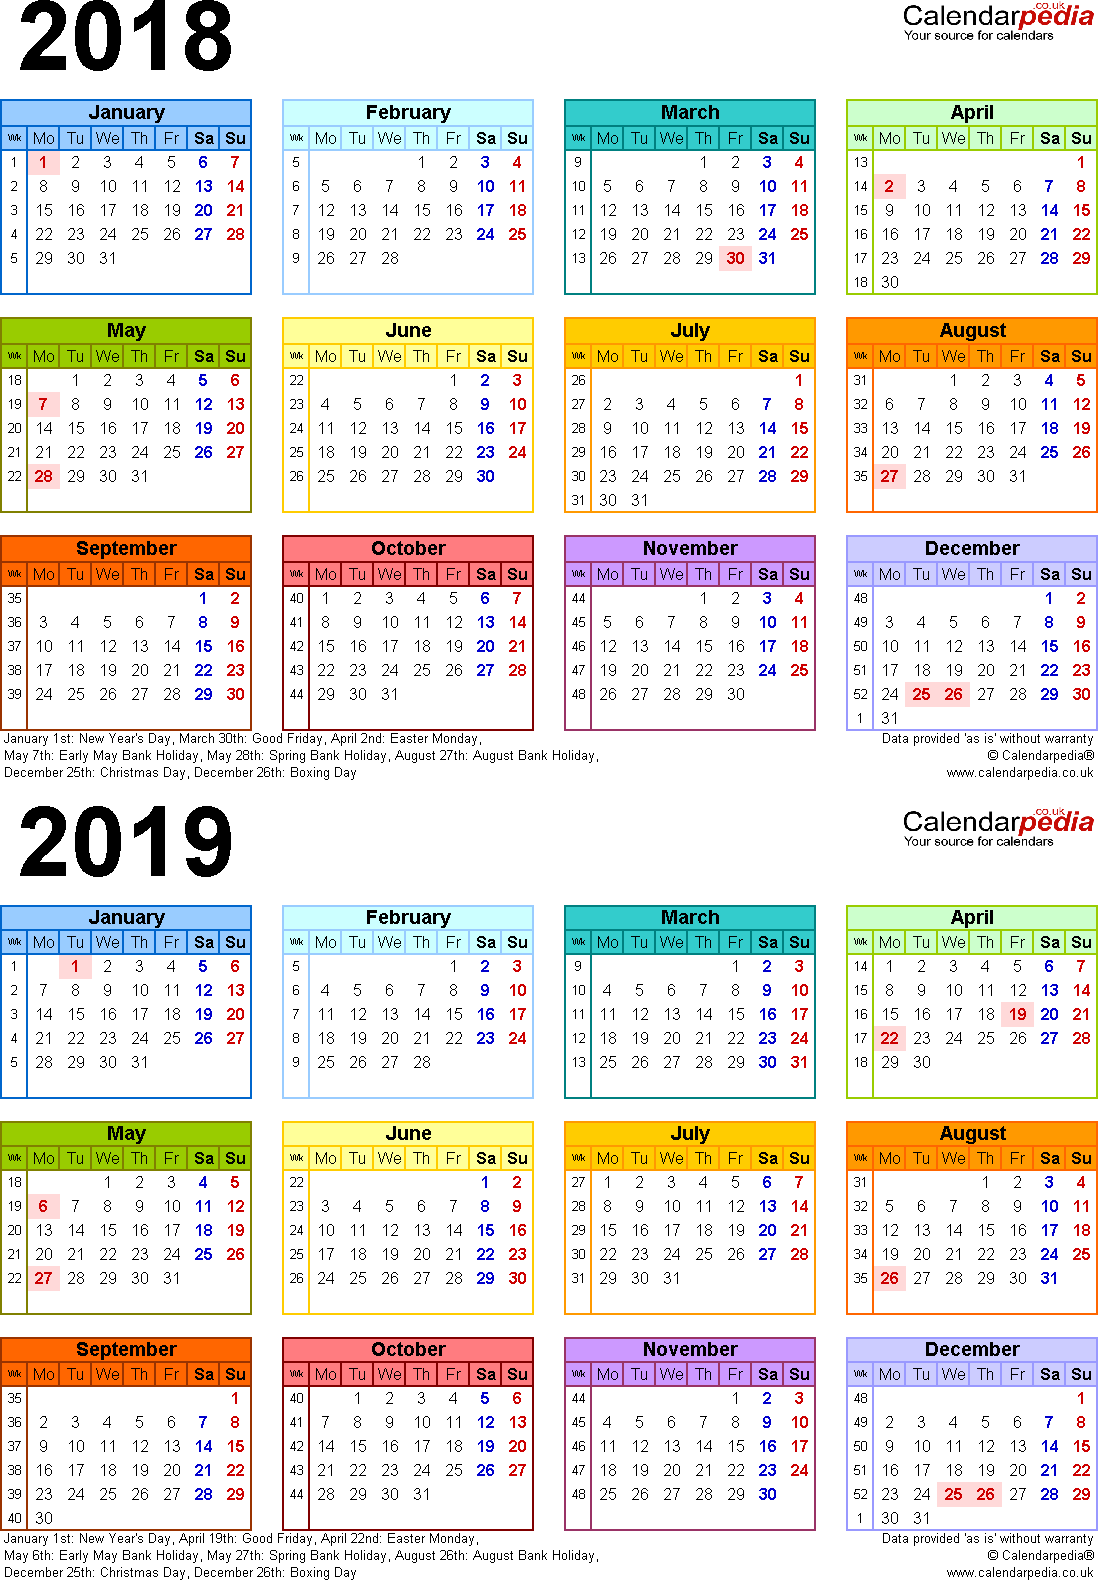 calendars 2018 2019 two year free download other designs and layouts are available at this link